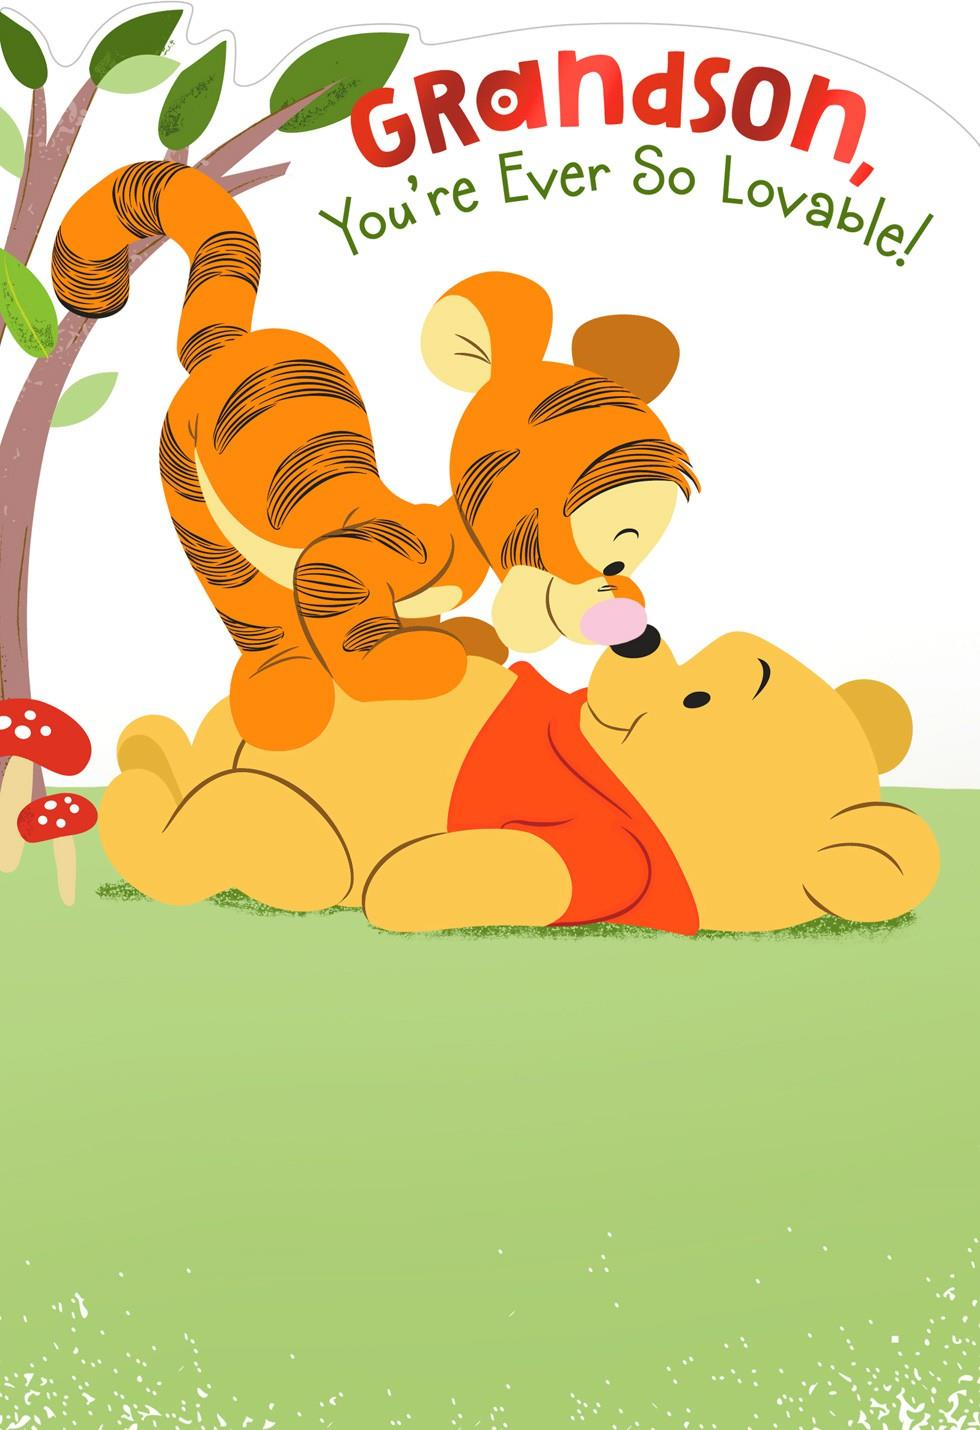 Winnie The Pooh Birthday Card For Grandson Greeting